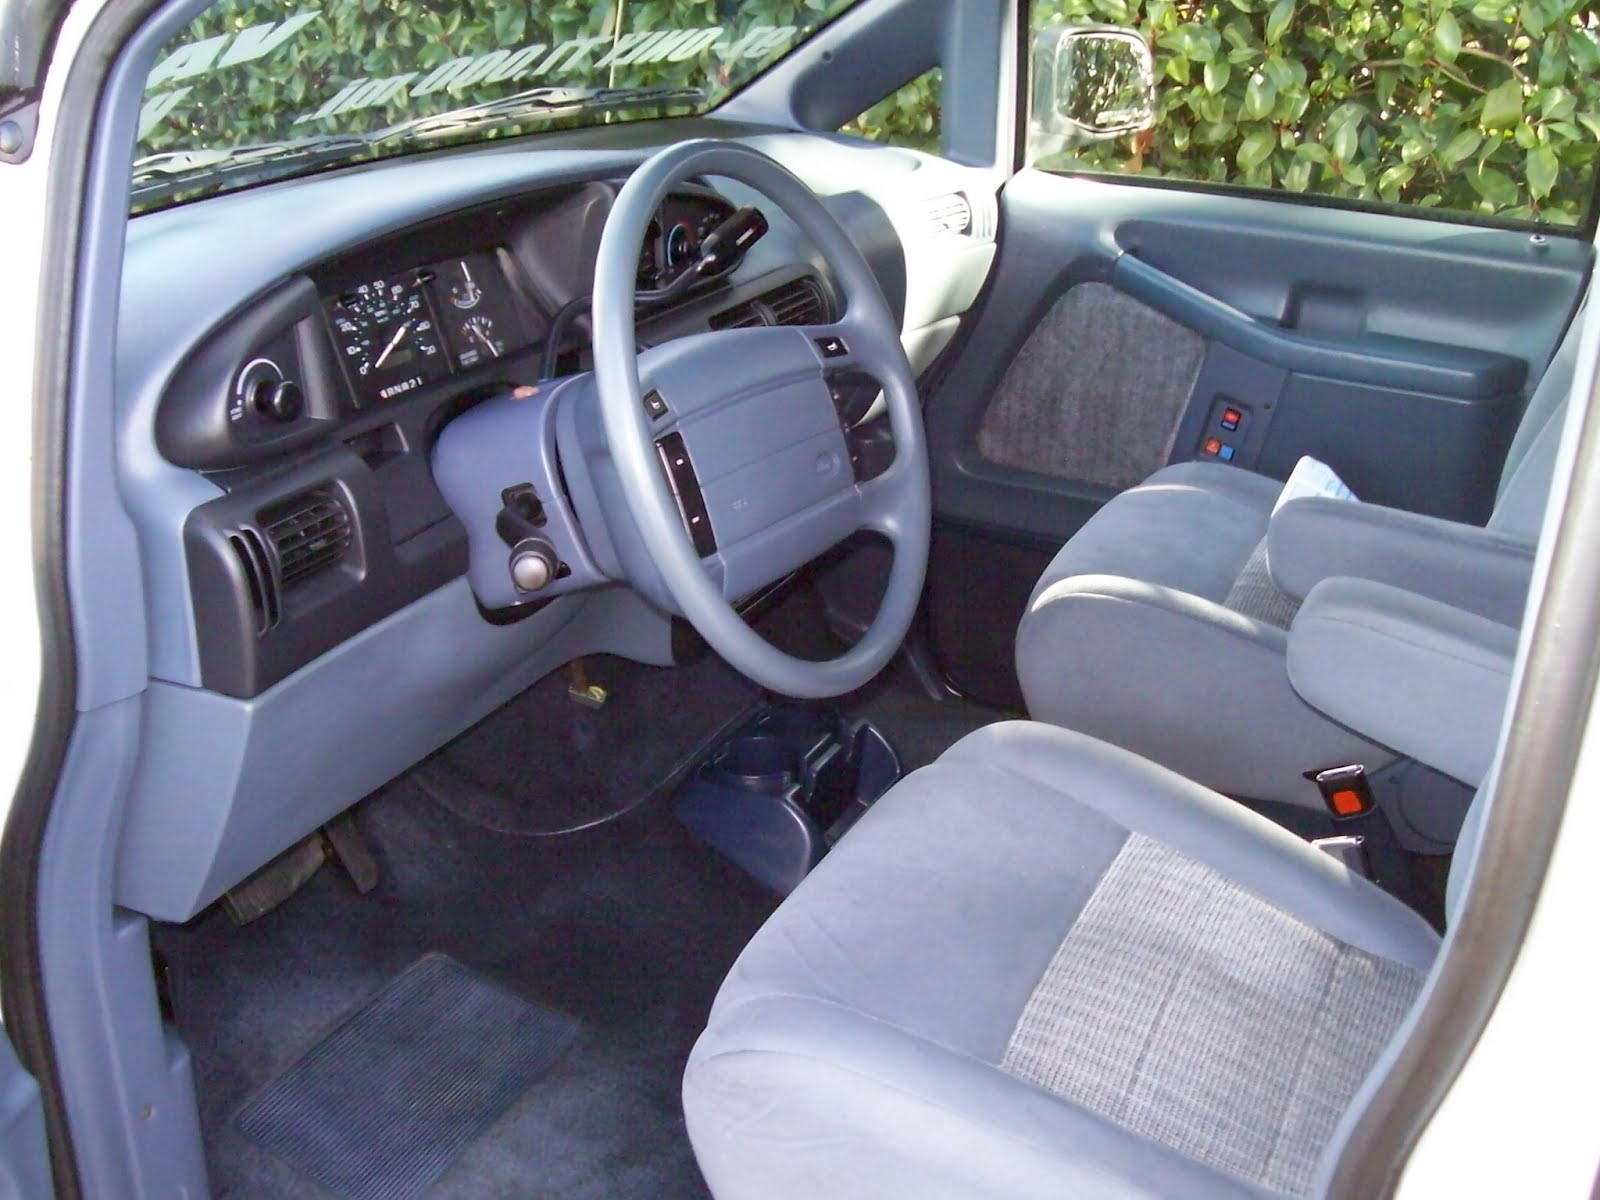 Ford Aerostar Camper Conversion >> Get last automotive article 2015 Lincoln MKC makes its first appearance